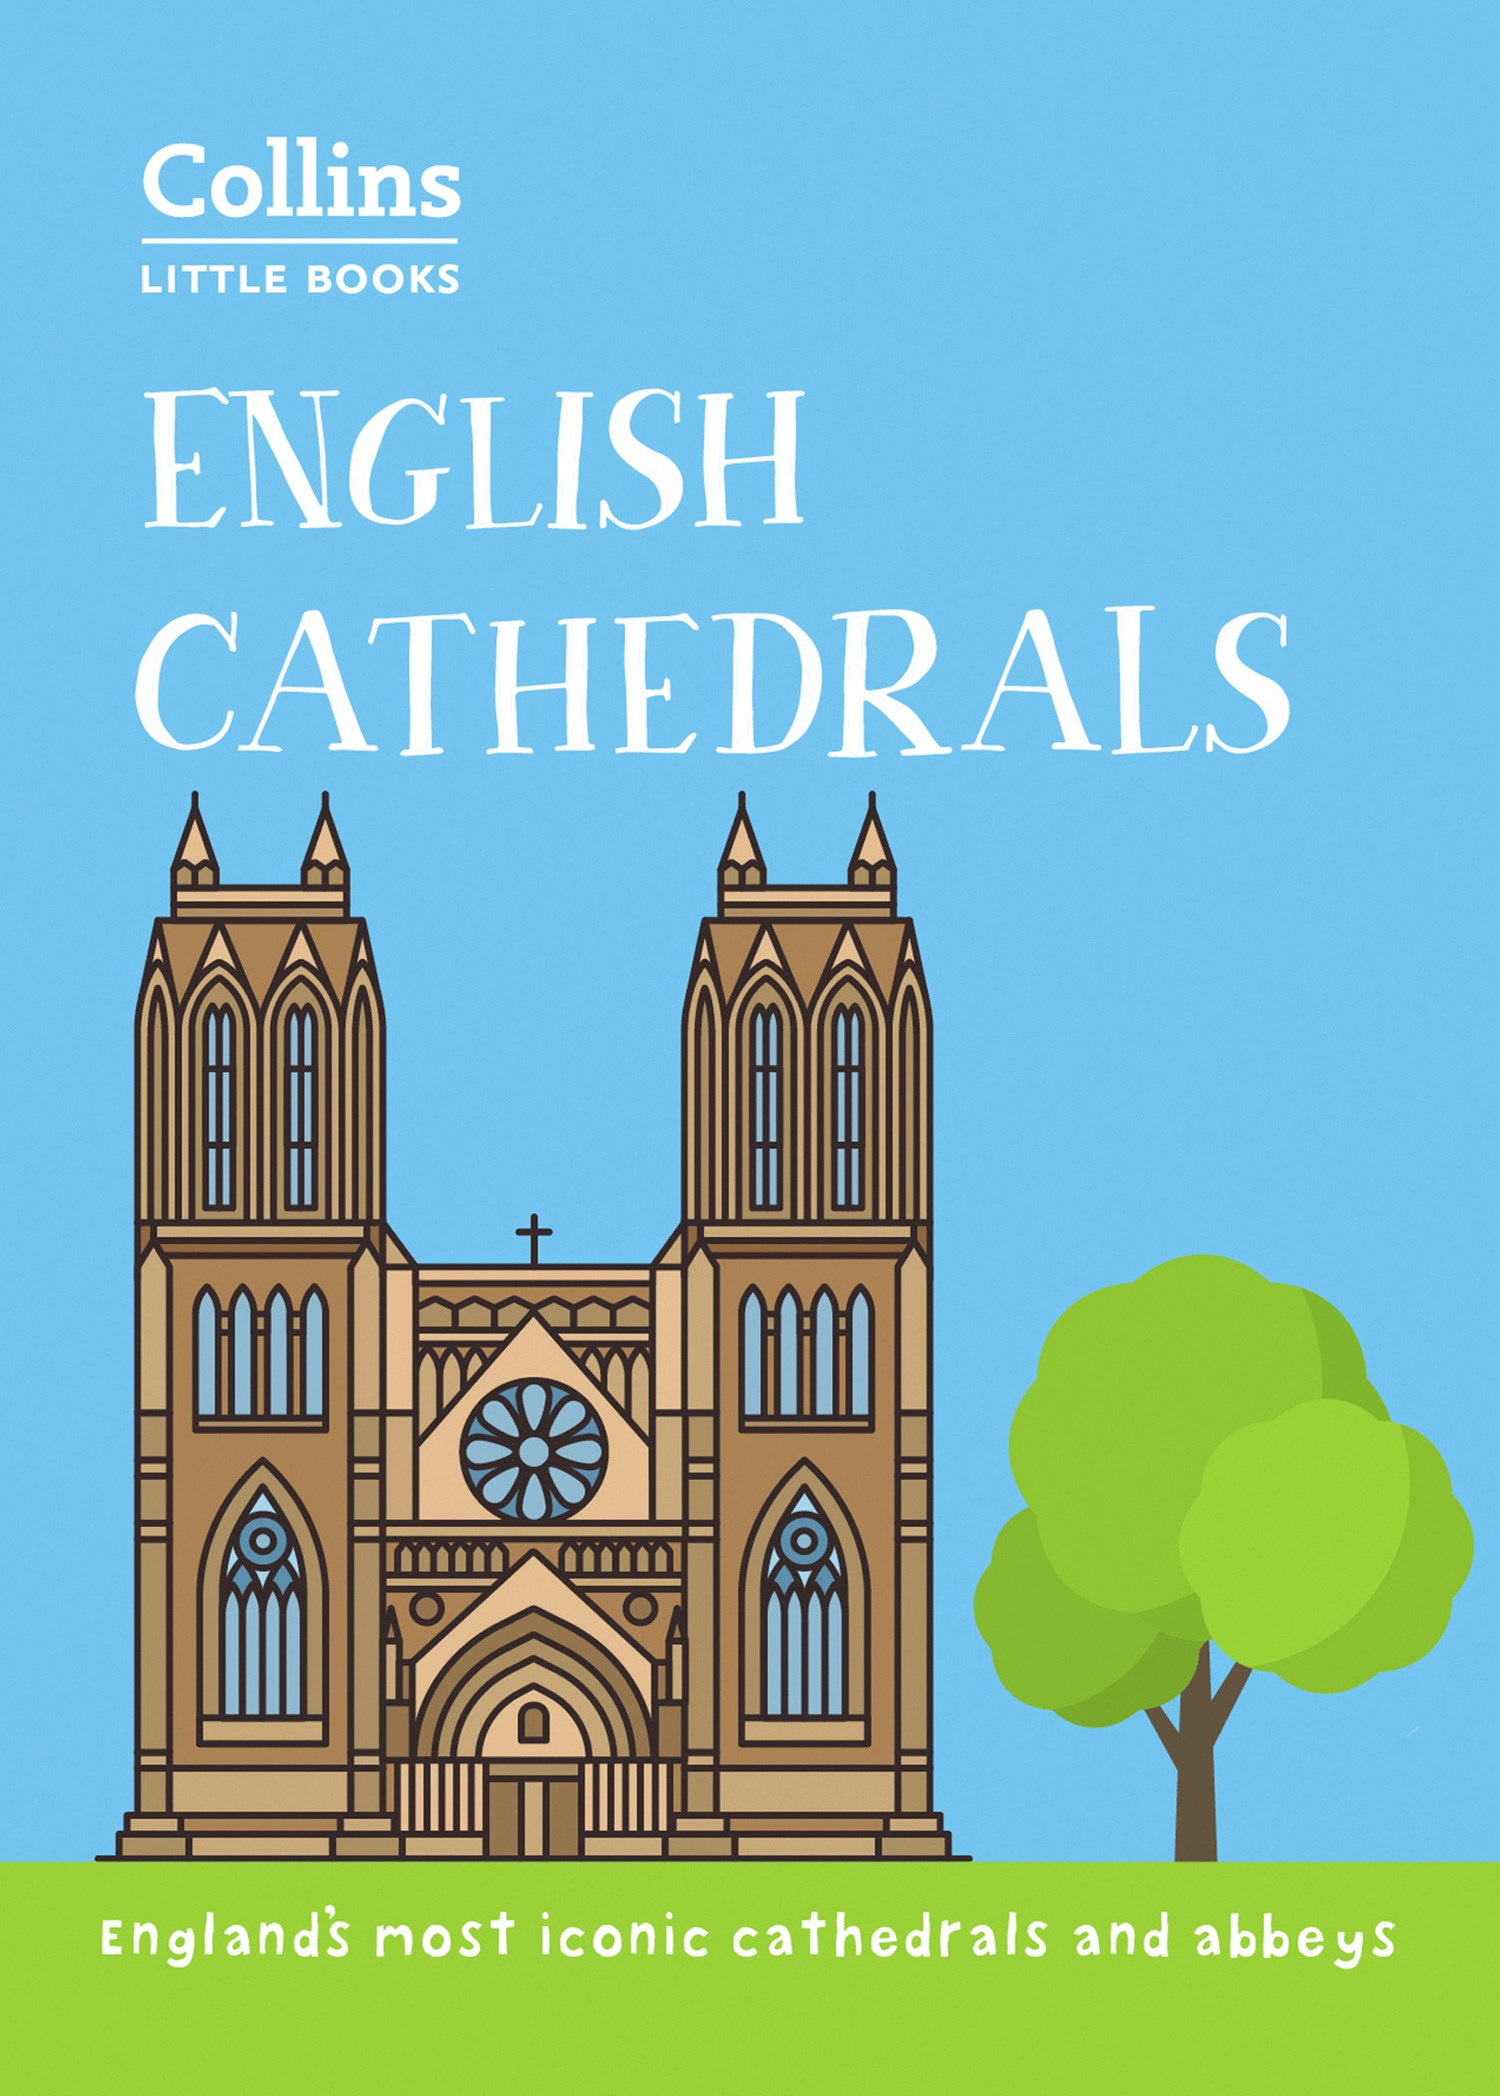 Collins Little Books - English Cathedrals